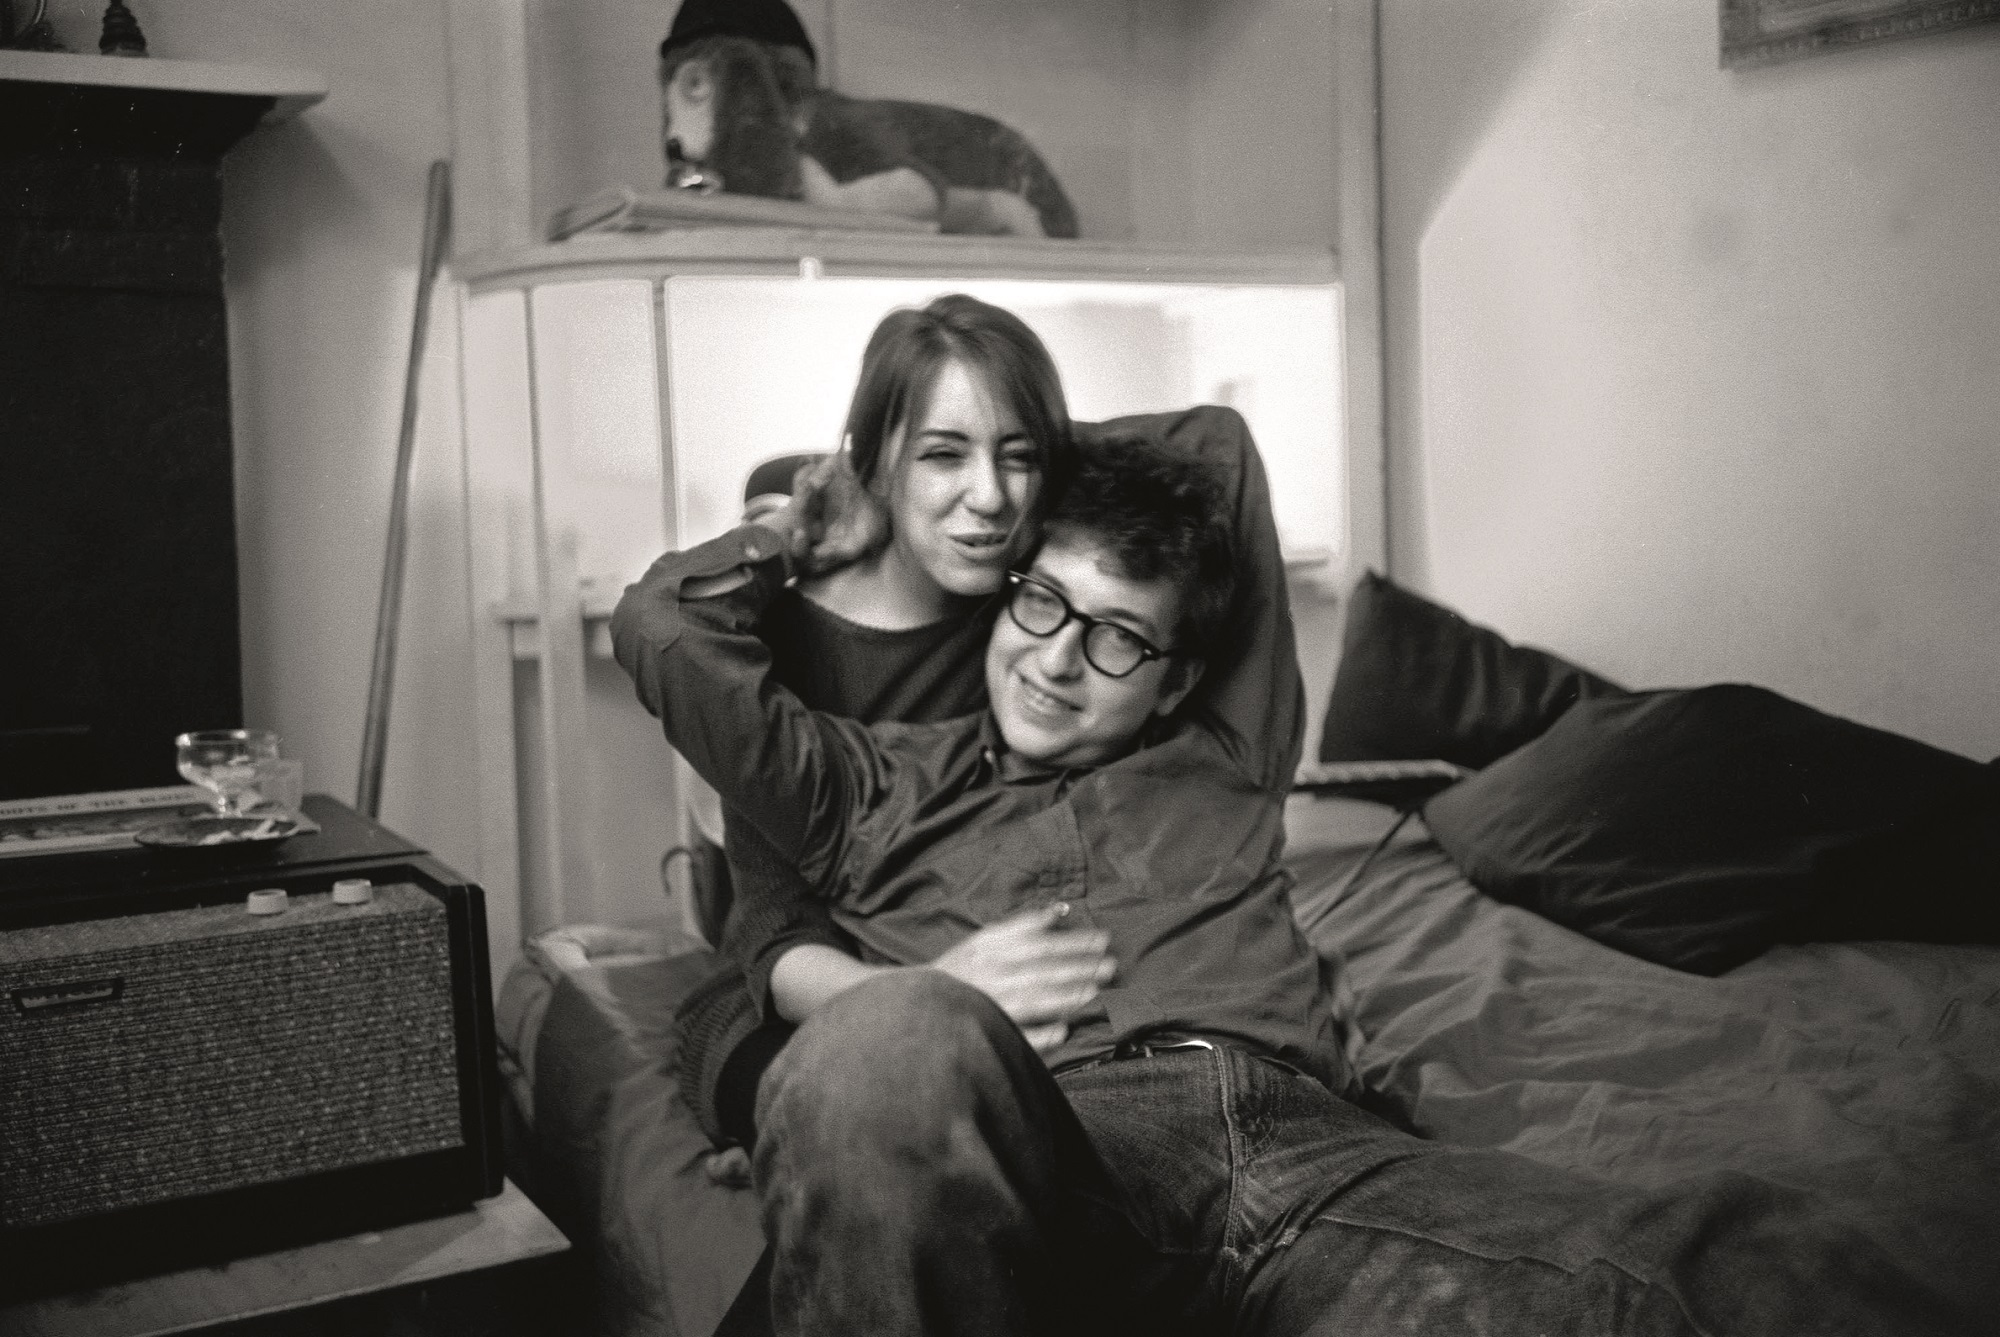 January 1962, New York, New York, USA: Bob Dylan lived in Greenwich Village with girlfriend Suze Rotolo, just a few months before he released his self-titled debut album. Rotolo who was Dylan's inspiration for some of the his love songs, Don't Think Twice, It's All Right, Boots of Spanish Leather and Tomorrow Is a Long Time died at 67, on February 28, 2011. She appeared with Dylan on the iconic cover of his 1963 breakthrough LP The Freewheelin' Bob Dylan. He met her after a gig whe she was 17 and they spent three years together. He later wrote that meeting her